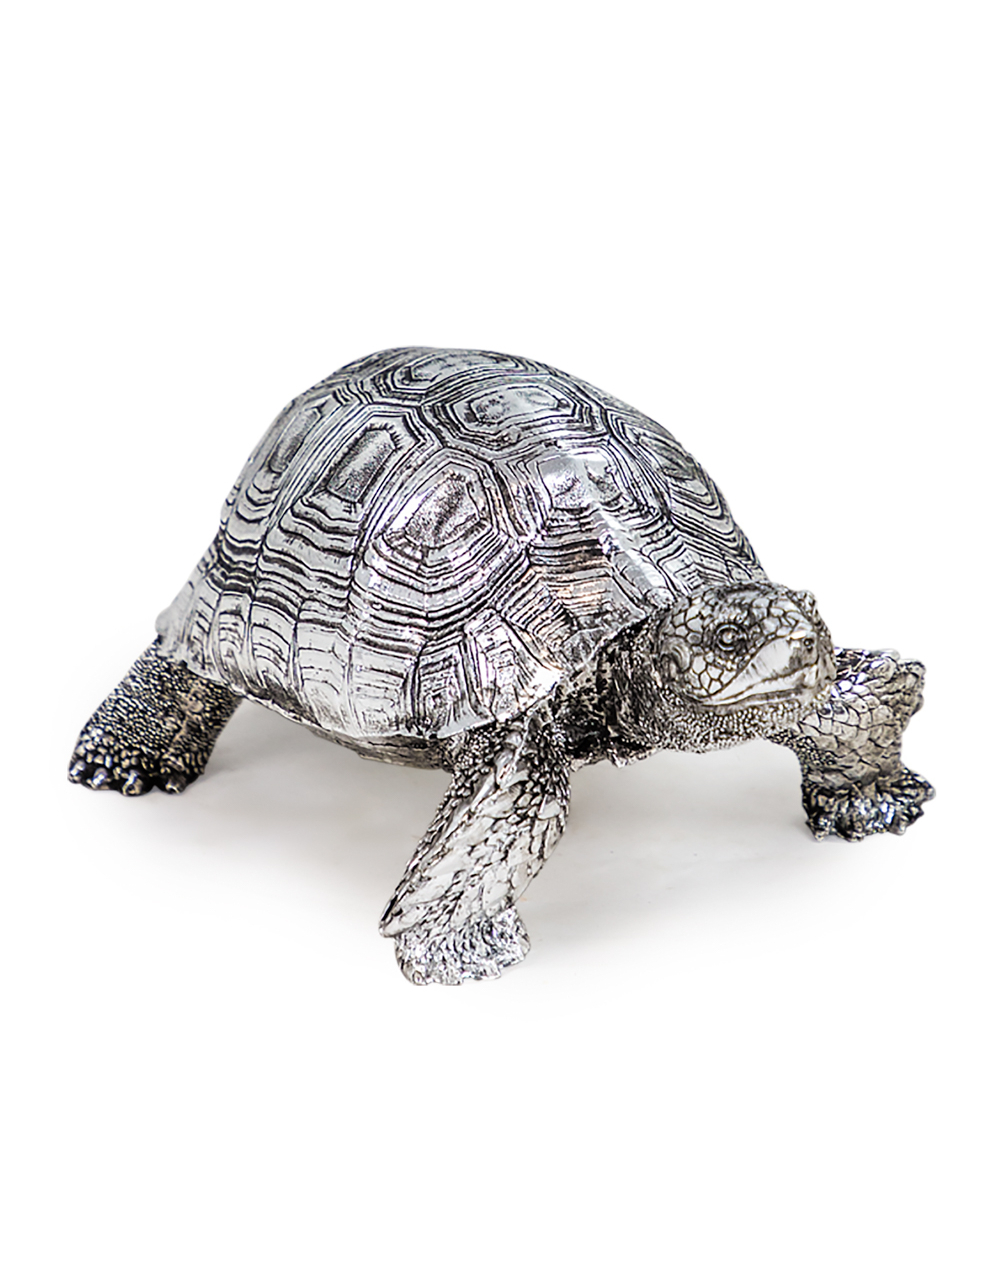 Small Silver Tortoise